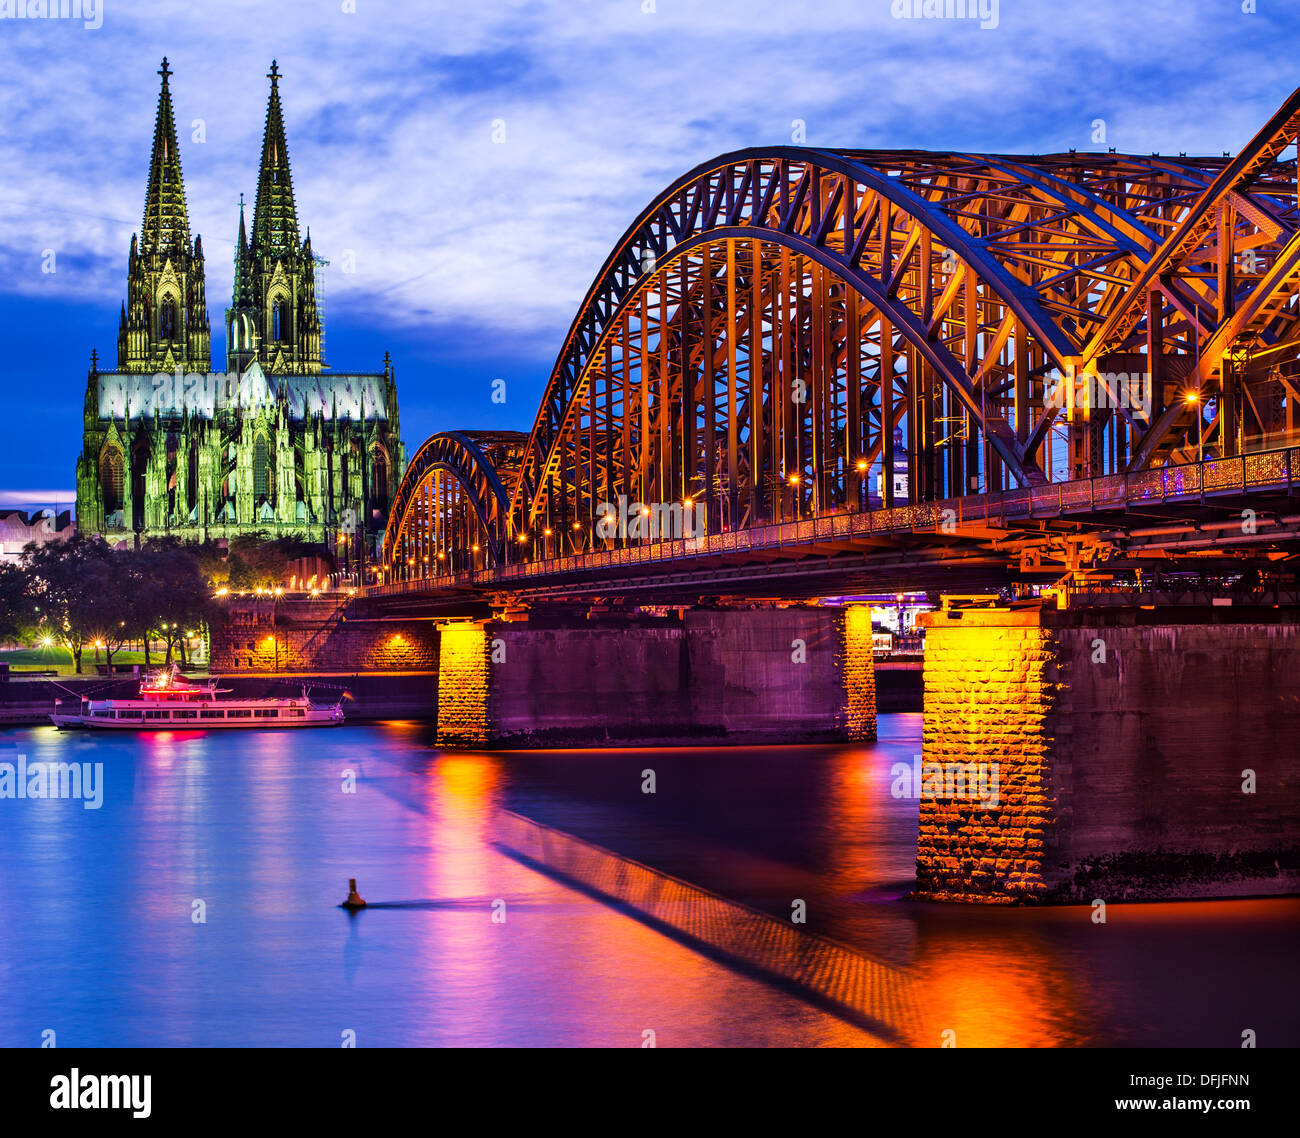 Cologne Cathedral in Cologne, Germany. - Stock Image